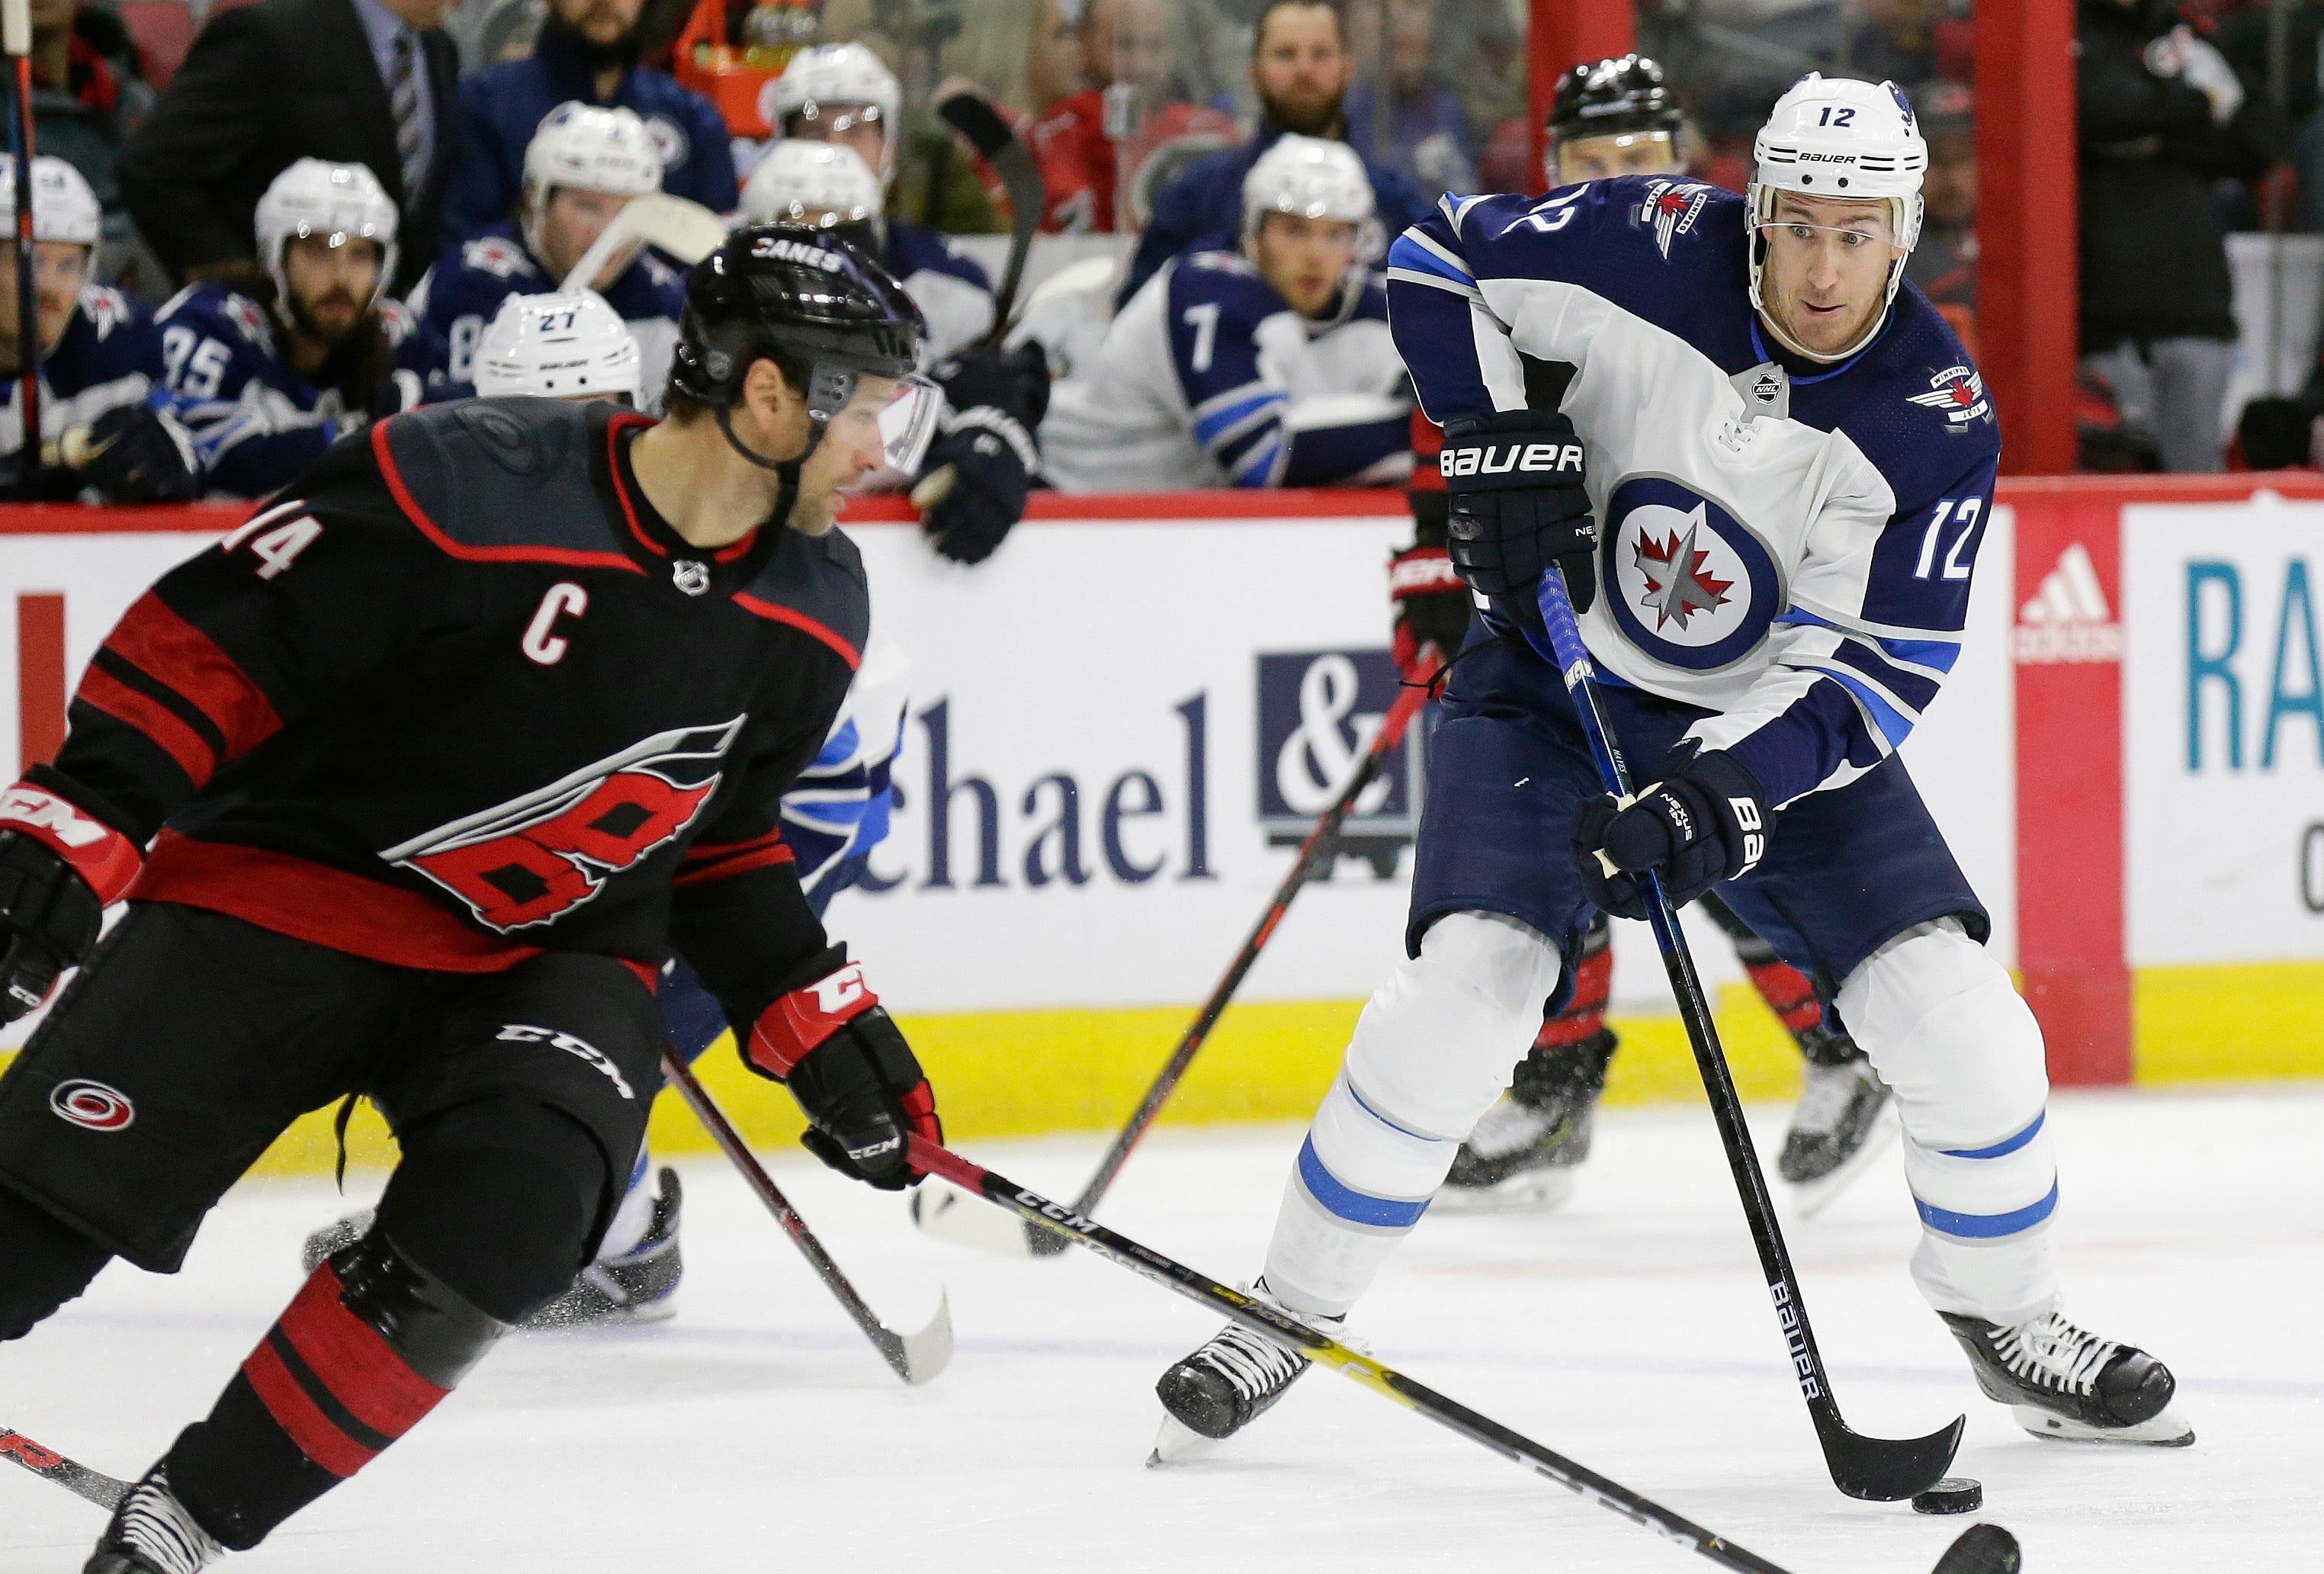 Jets rout Hurricanes 8-1 to take Central Division lead